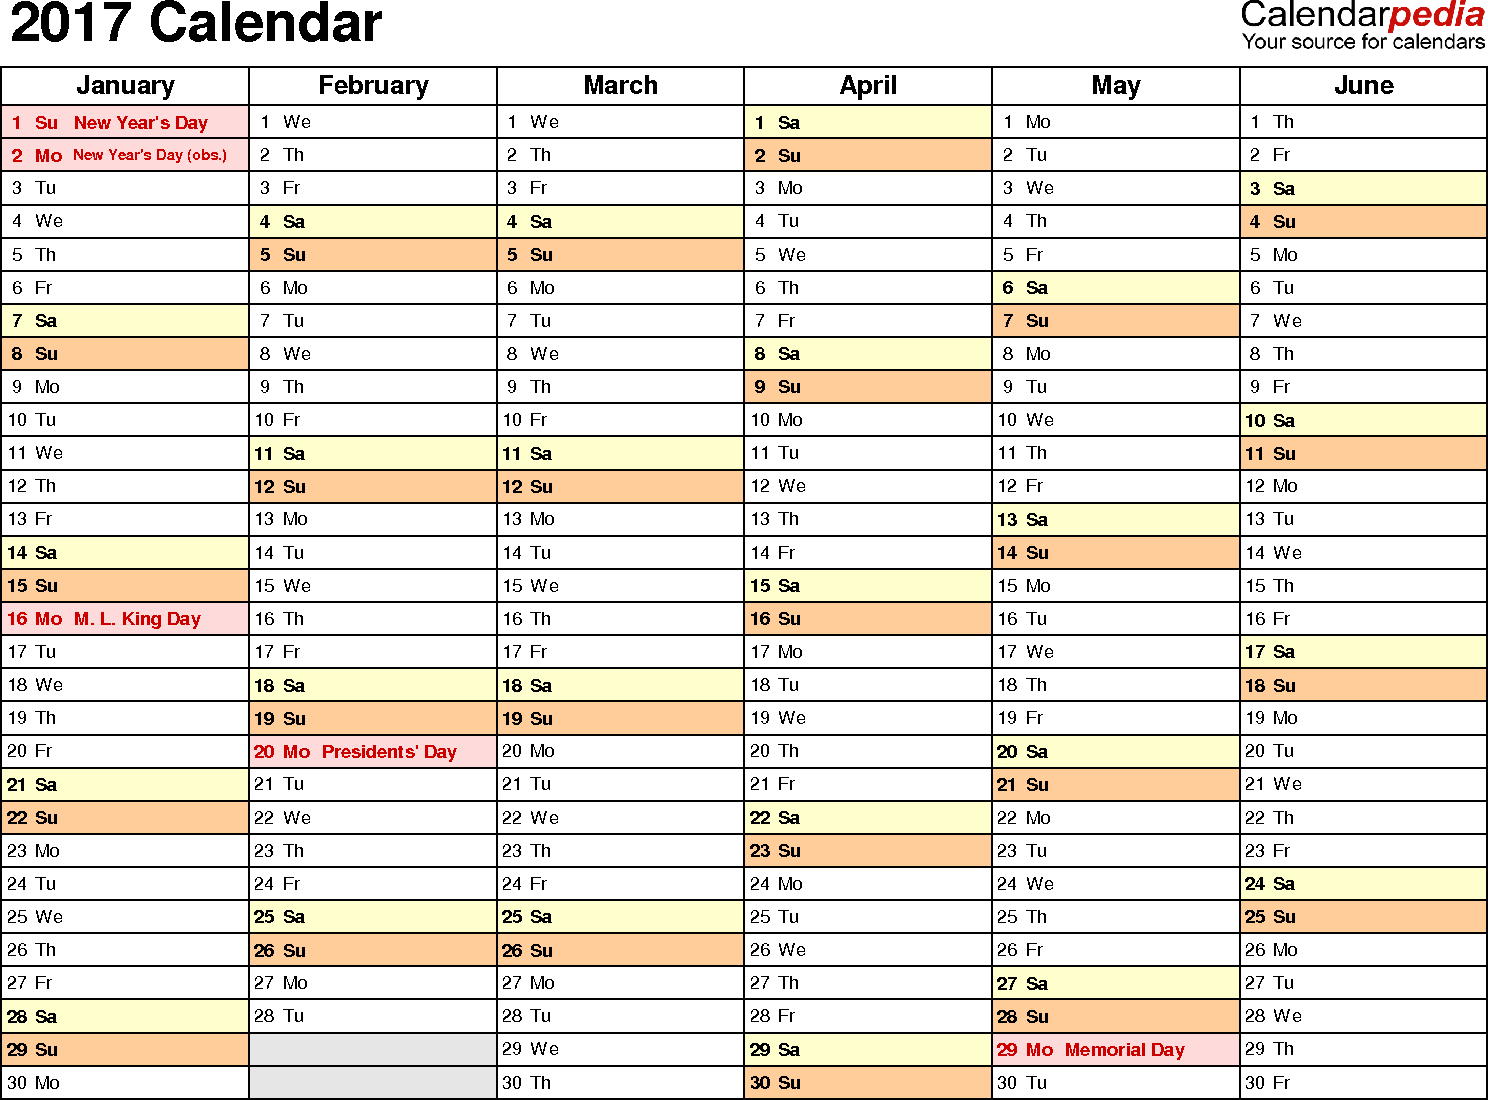 Ediblewildsus  Inspiring  Calendar  Download  Free Printable Excel Templates Xls With Lovable Template   Calendar For Excel Months Horizontally  Pages Landscape Orientation With Charming Password Excel File Also How To Add A Graph In Excel In Addition Finding Standard Deviation On Excel And Excel Hotel Tokyu As Well As Microsoft Excel Certification Exam Additionally Regression Analysis In Excel  From Calendarpediacom With Ediblewildsus  Lovable  Calendar  Download  Free Printable Excel Templates Xls With Charming Template   Calendar For Excel Months Horizontally  Pages Landscape Orientation And Inspiring Password Excel File Also How To Add A Graph In Excel In Addition Finding Standard Deviation On Excel From Calendarpediacom